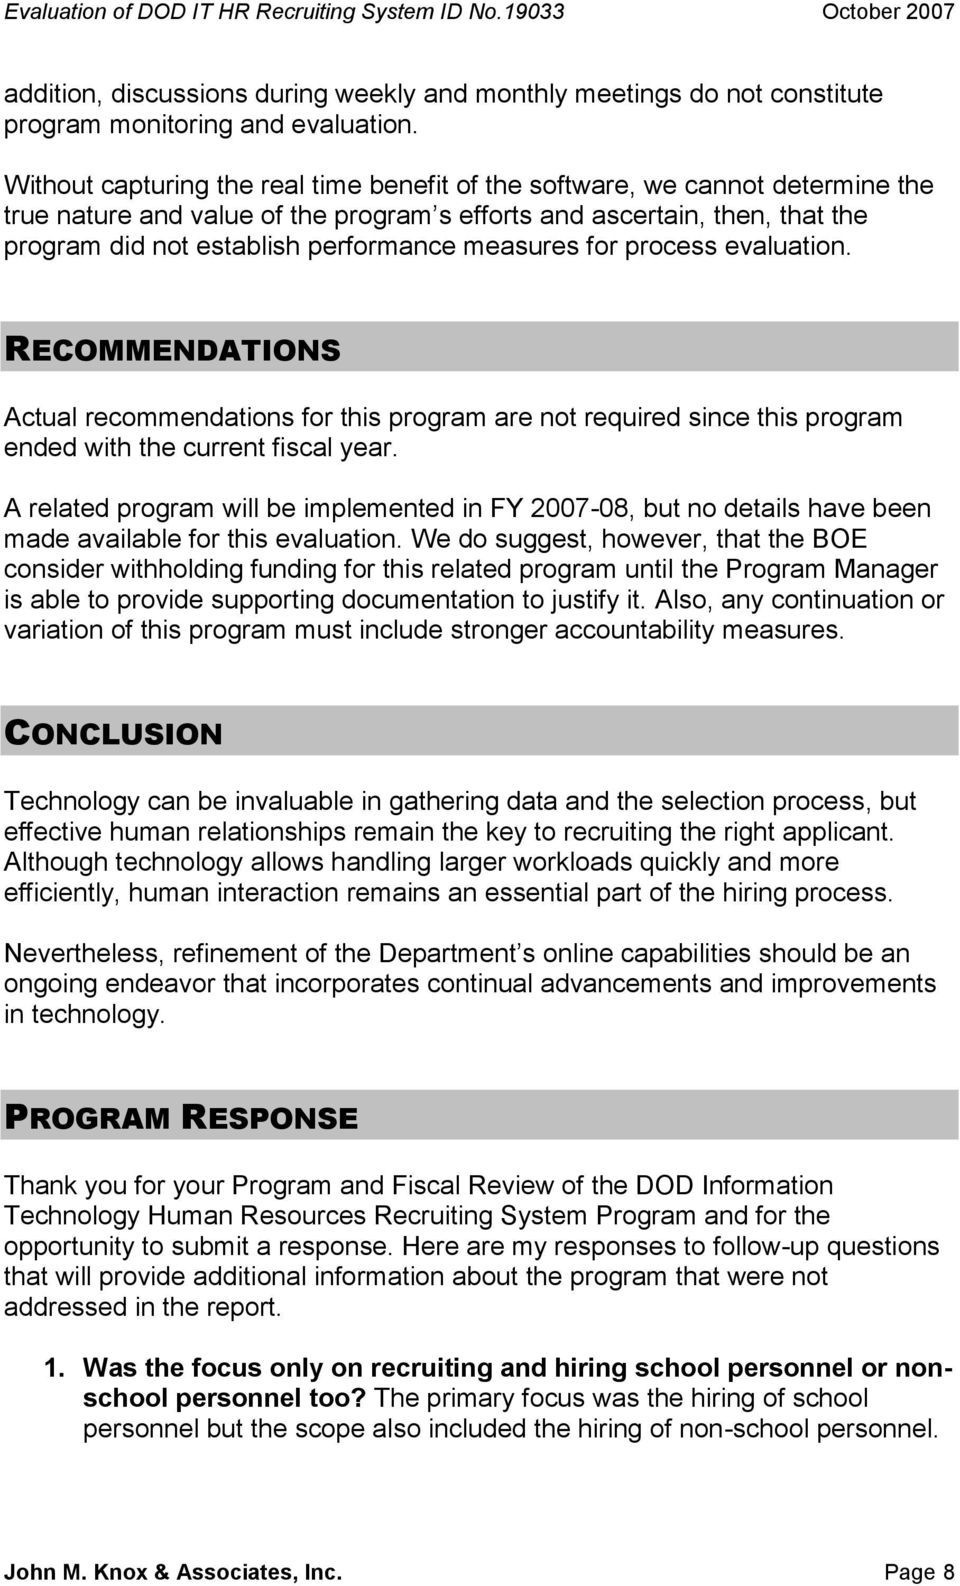 measures for process evaluation. RECOMMENDATIONS Actual recommendations for this program are not required since this program ended with the current fiscal year.